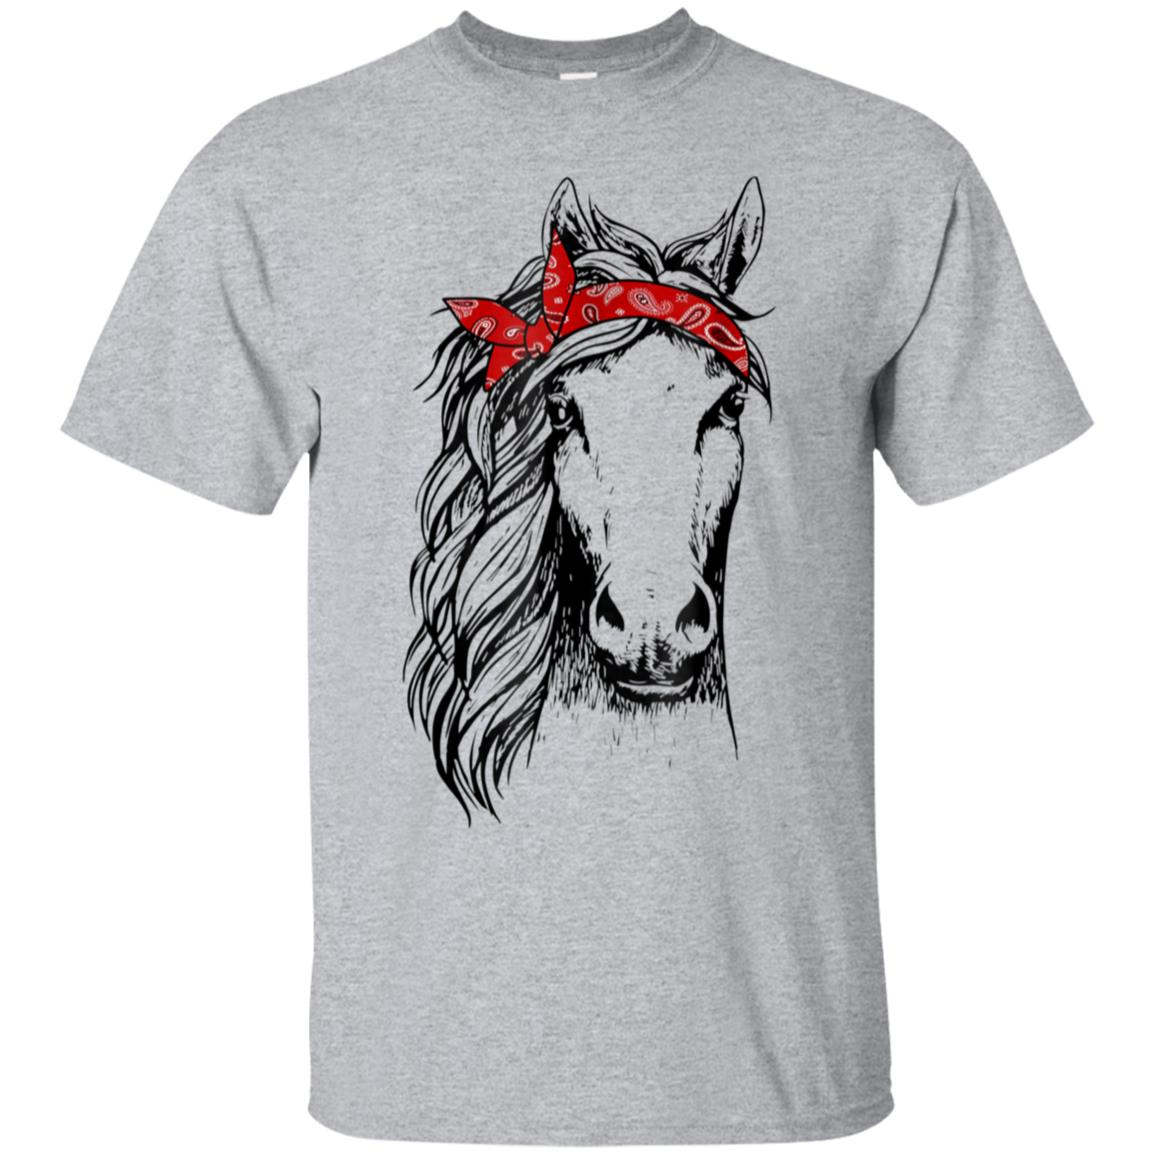 Horse Bandana T Shirt for Horseback Riding Horse Lover 99promocode